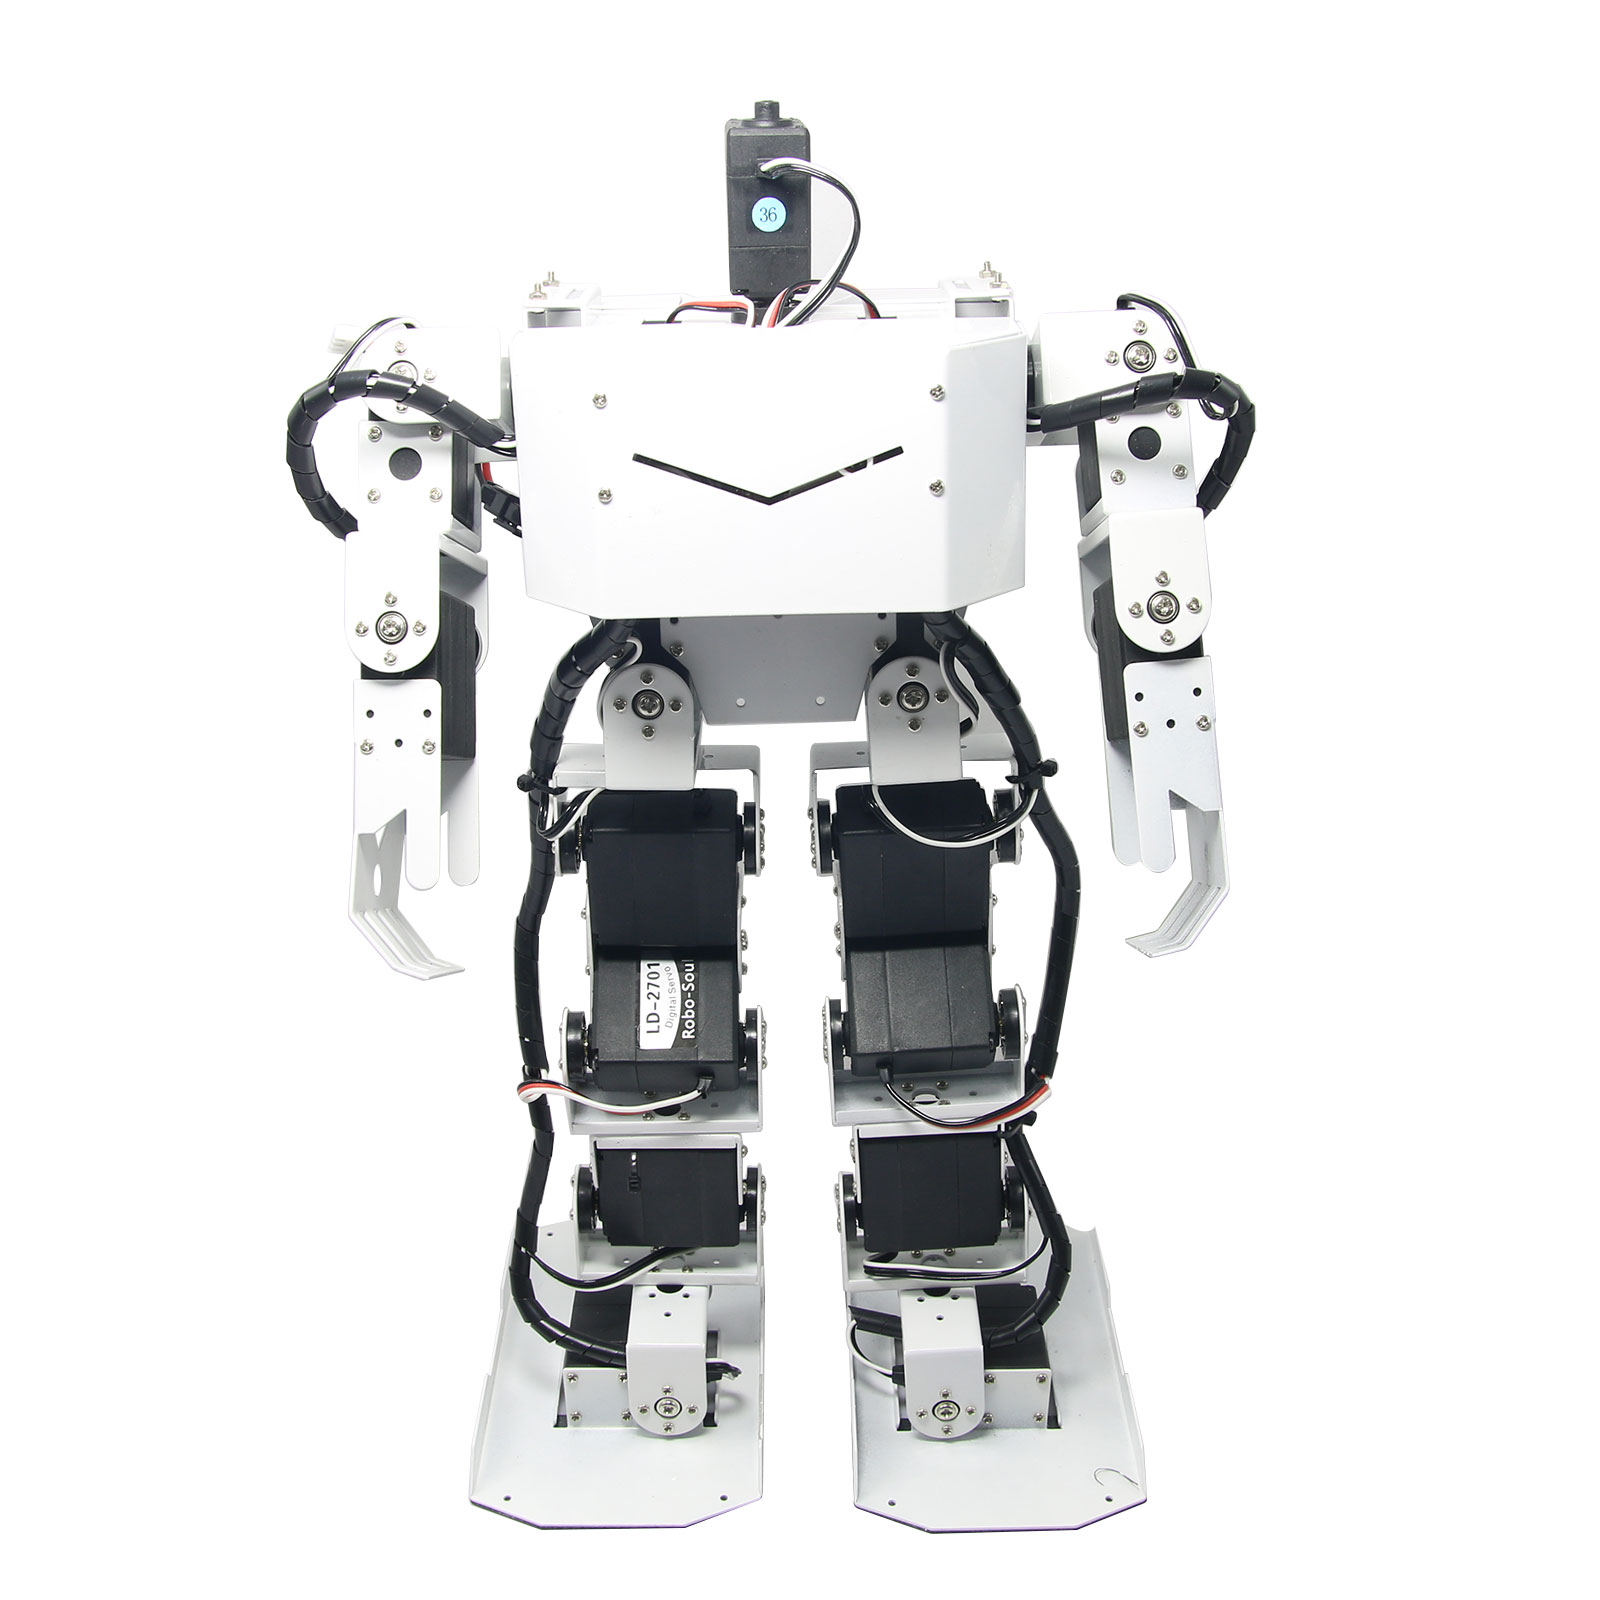 Assembled Aluminum 17DOF Robo-Soul H3.0 Biped Robotics Humanoid Robot with LD-1501 Servos + 24CH Controller new 17 degrees of freedom humanoid robot saibov6 teaching and research biped robot platform model no electronic control system